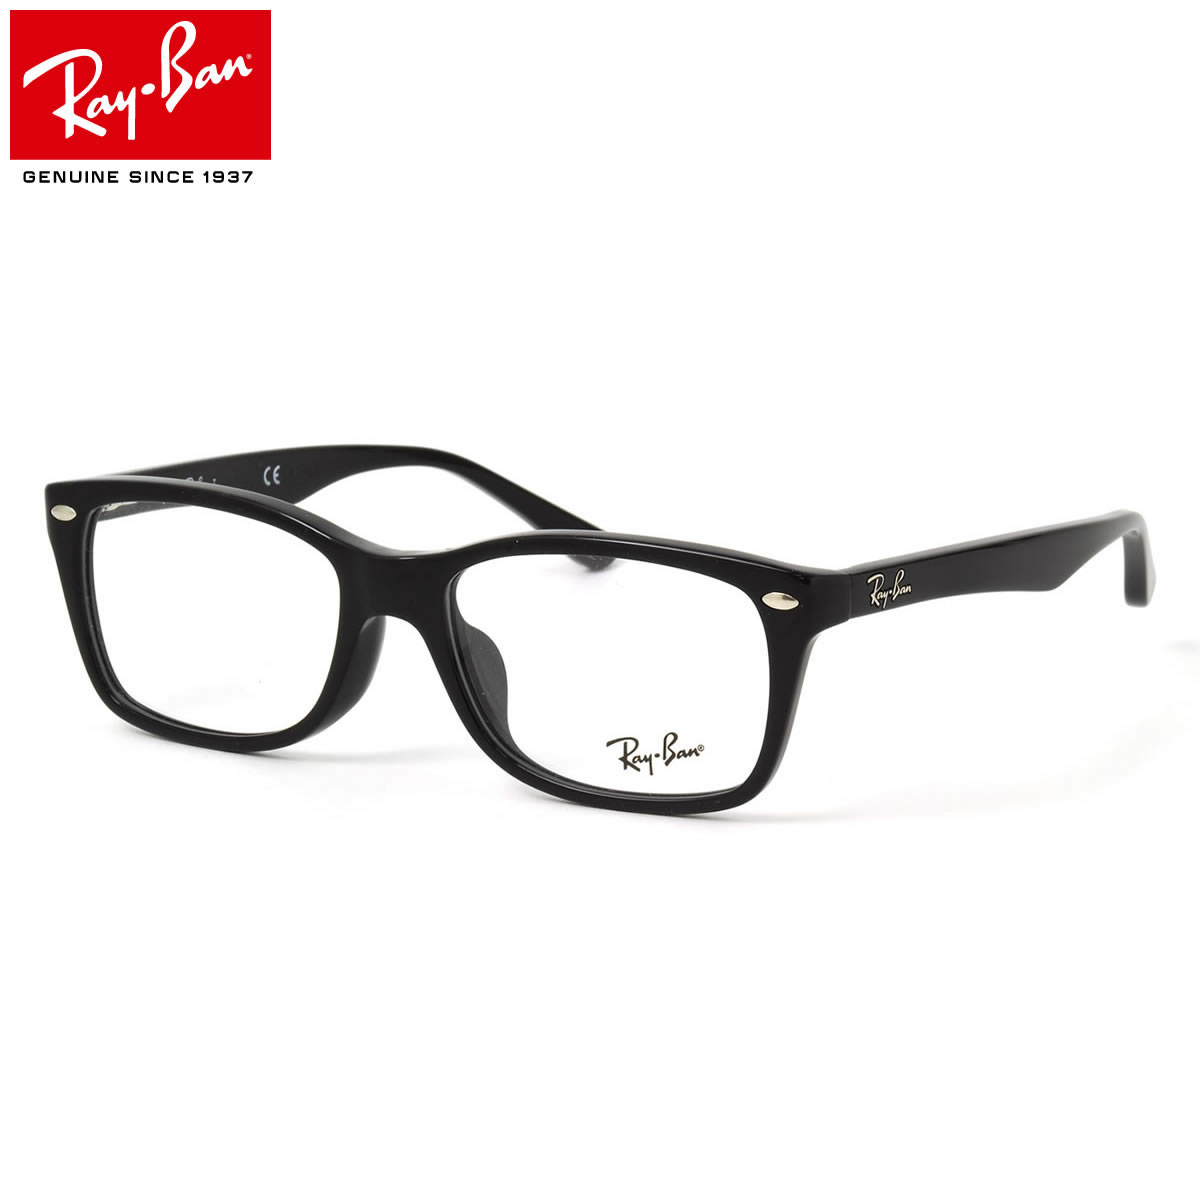 8c1143f8bf Monthly excellence shop □ coupon appearance advantageous! Ray-Ban glasses  frame Ray-Ban RX5228F 2000 53 size full fitting Ray-Ban RAYBAN men gap Dis